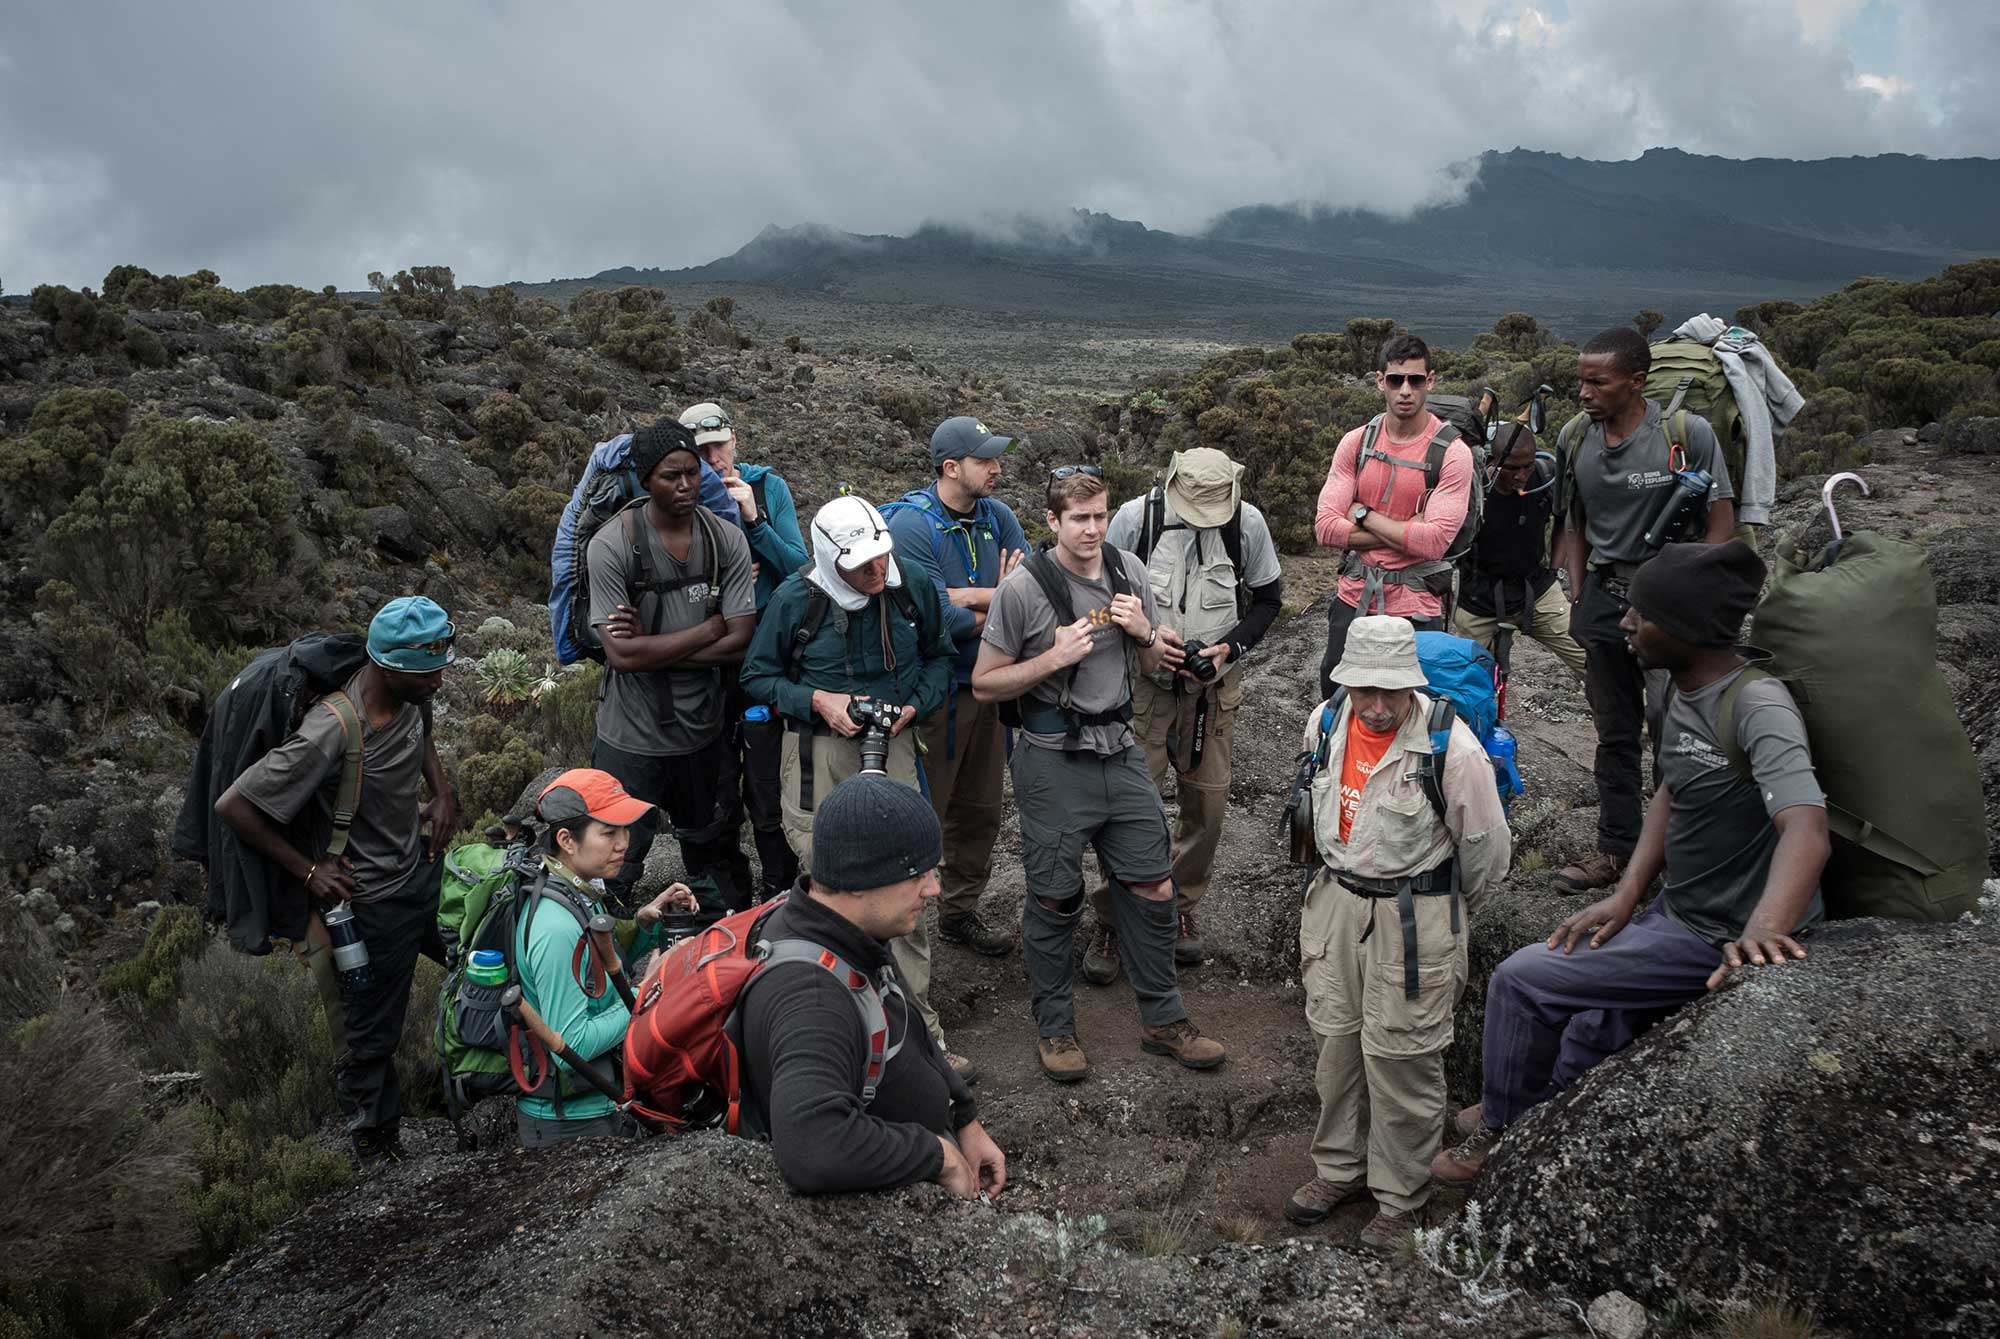 D3-22-Kilimanjaro-climbers-at-Scott-Fischer-Memorial.jpg